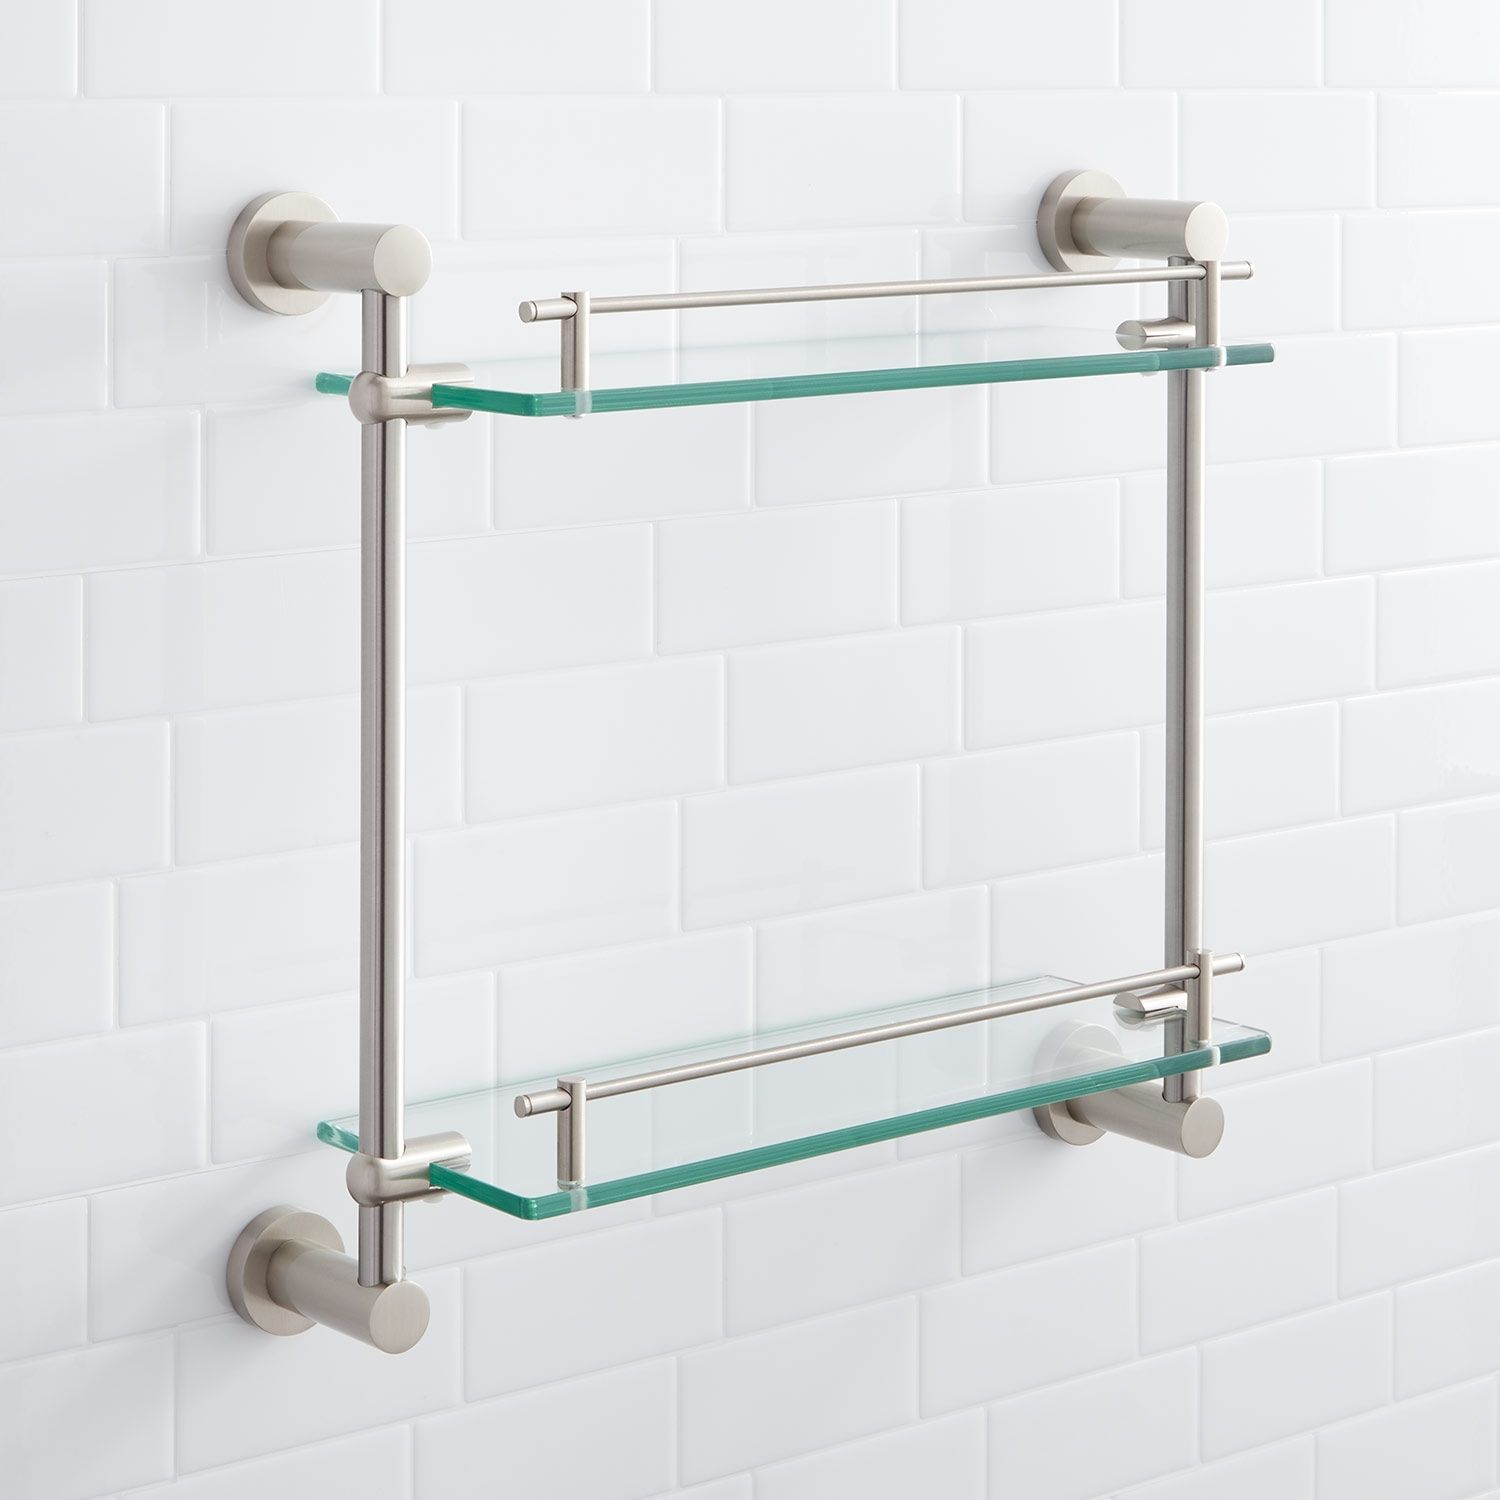 Ceeley Collection Tempered Glass Shelf In Two Shelves In Brushed